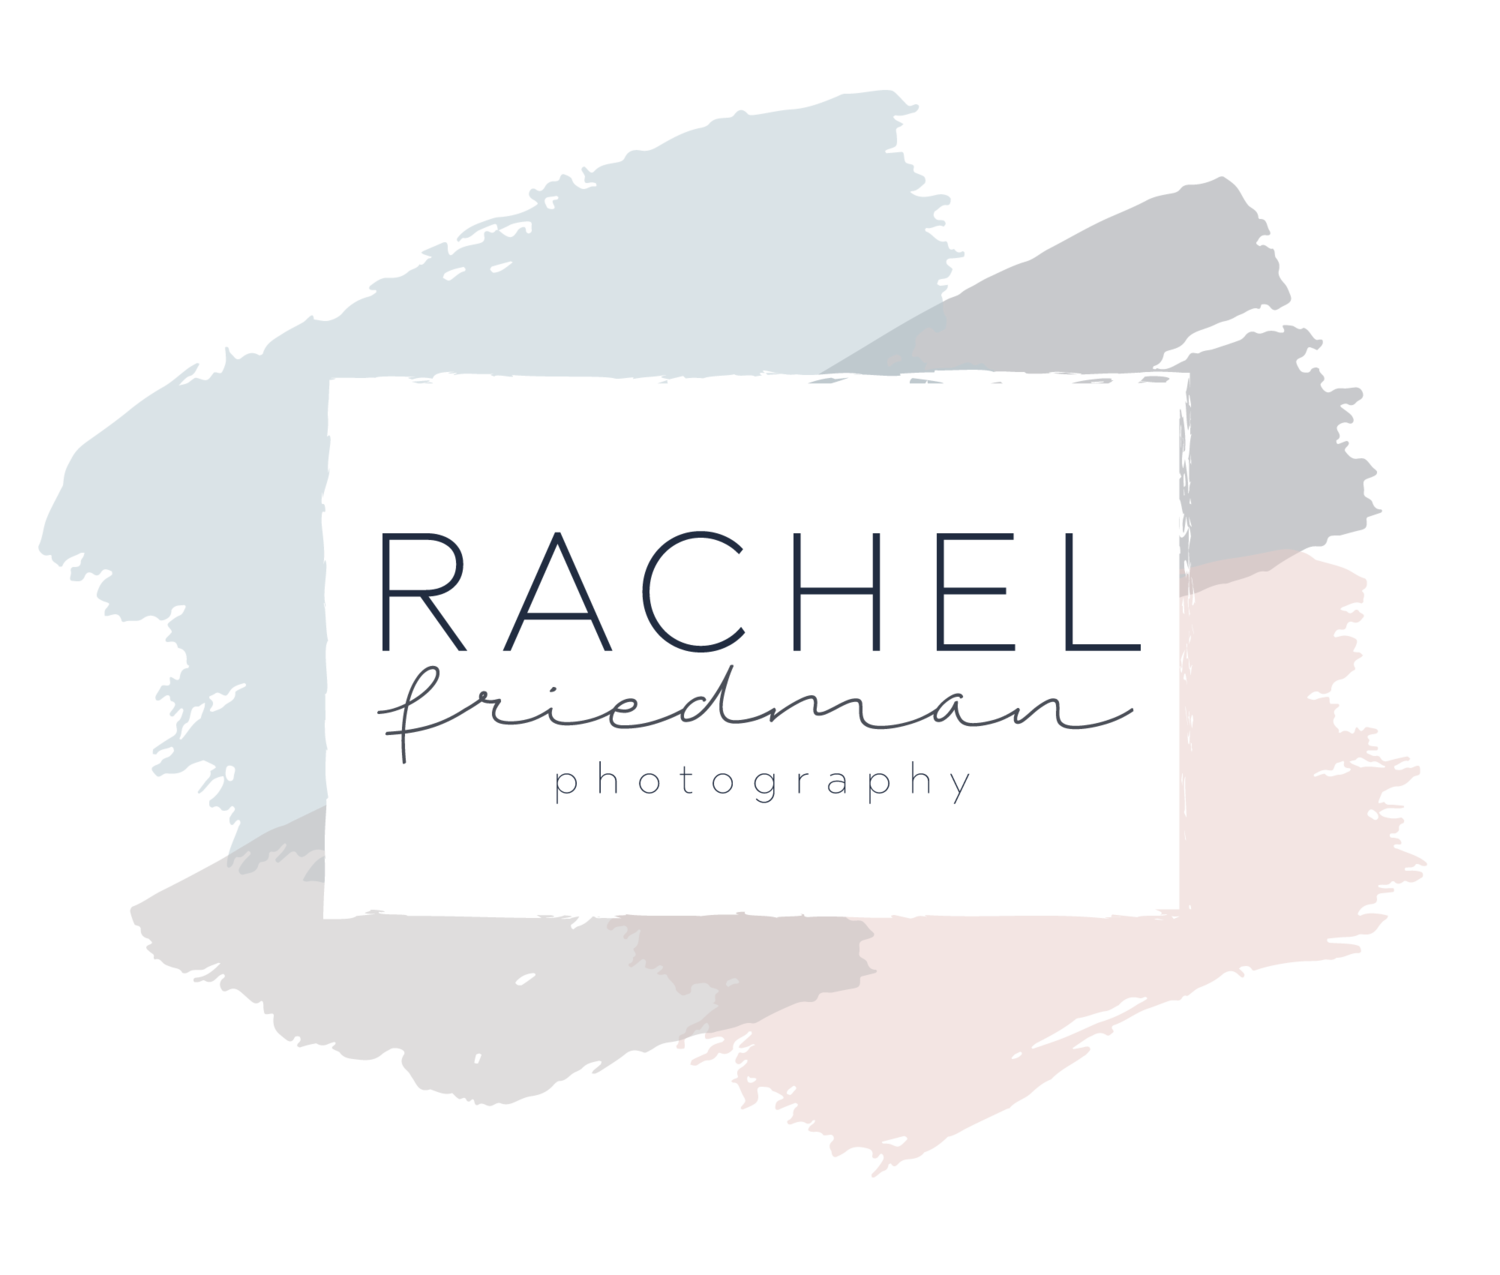 Rachel Friedman Photography